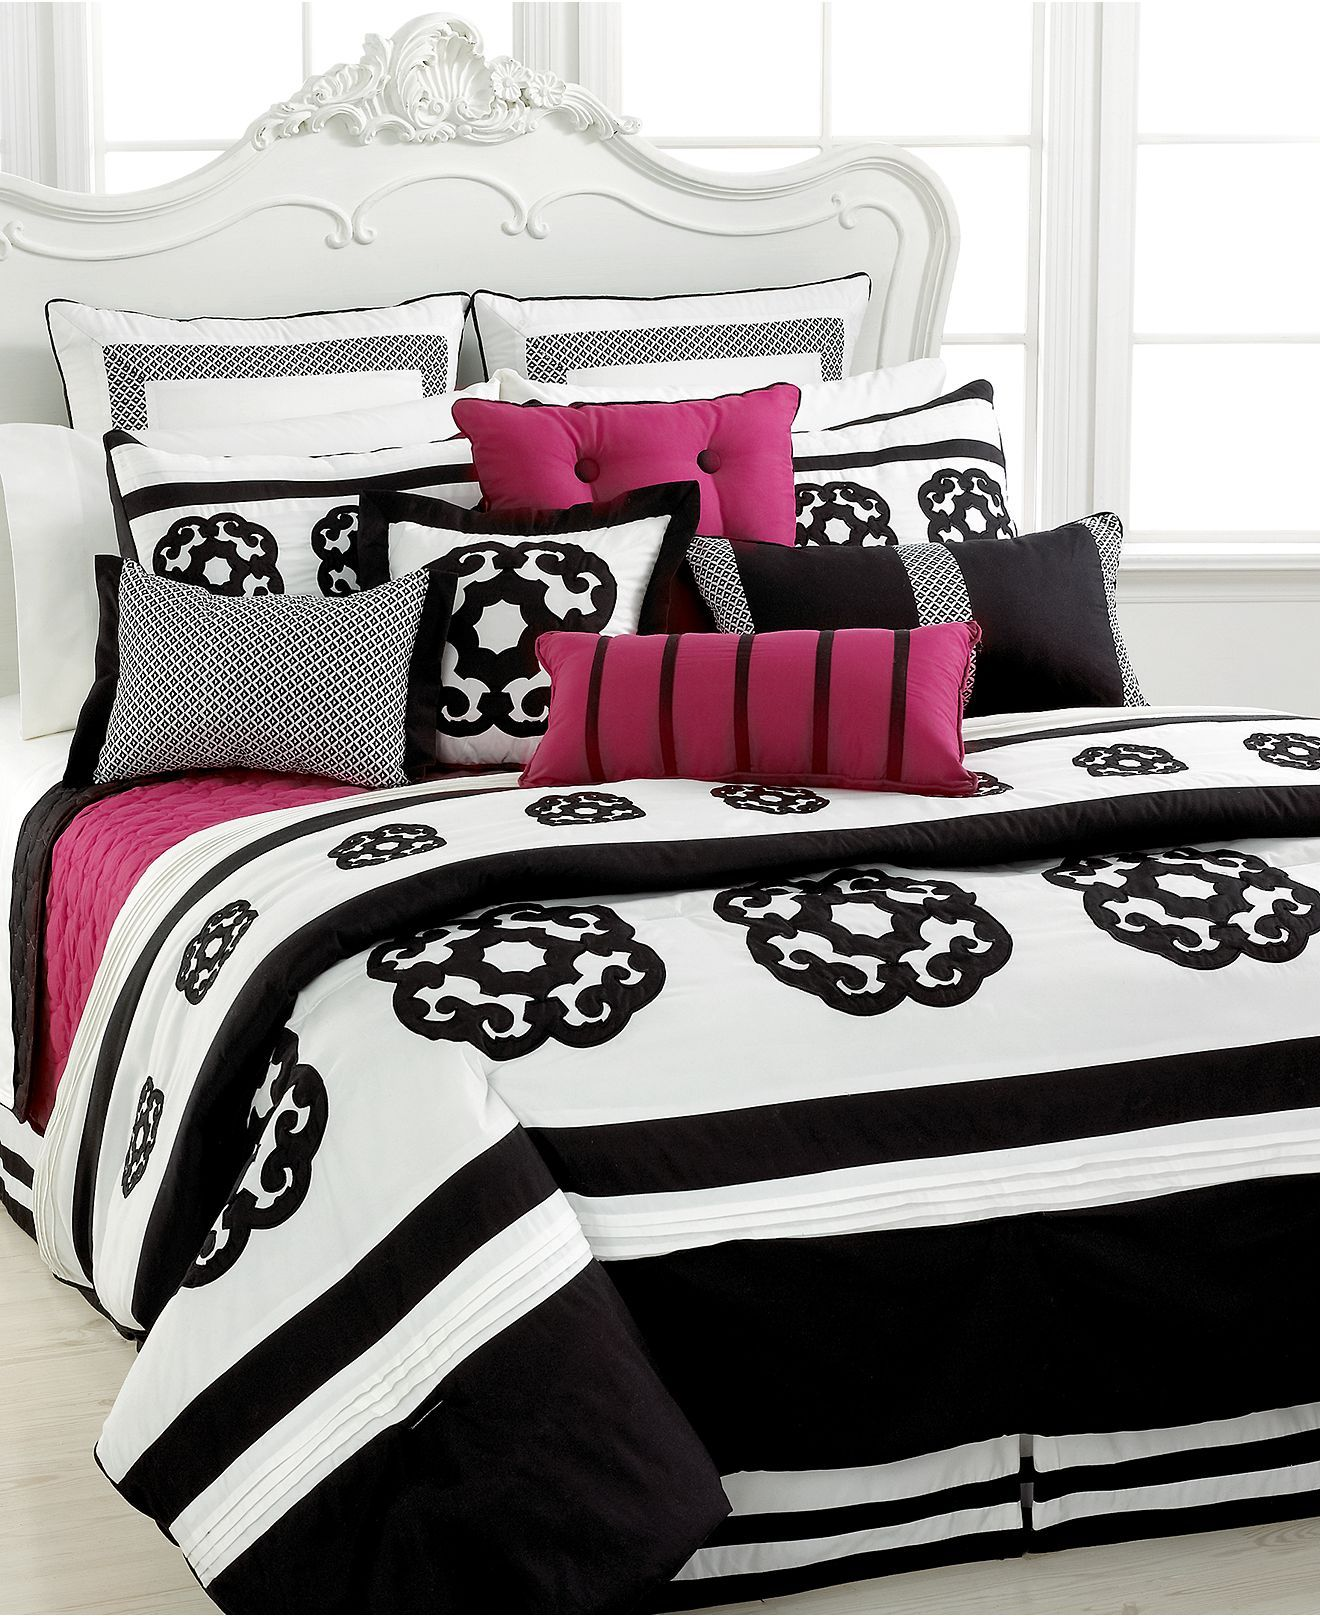 Sabina 12 Piece Full Comforter Set - Macy's (for guest ...